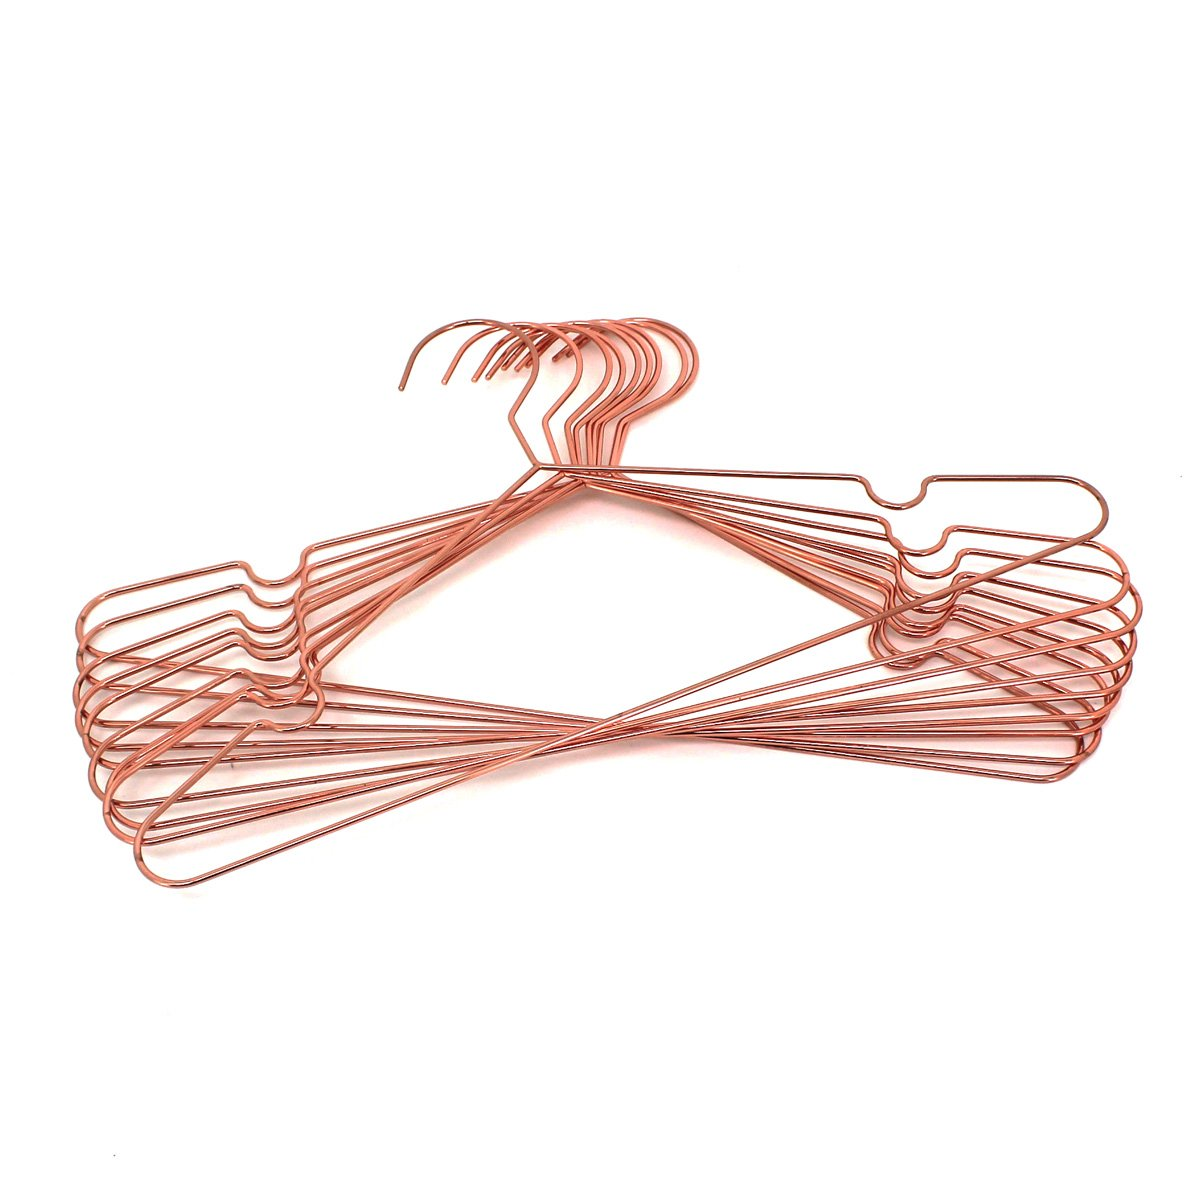 60Pack Koobay A17'' Adult Rose Copper Gold Shiny Metal Wire Top Clothes Hangers for Shirts Coat Storage & Display